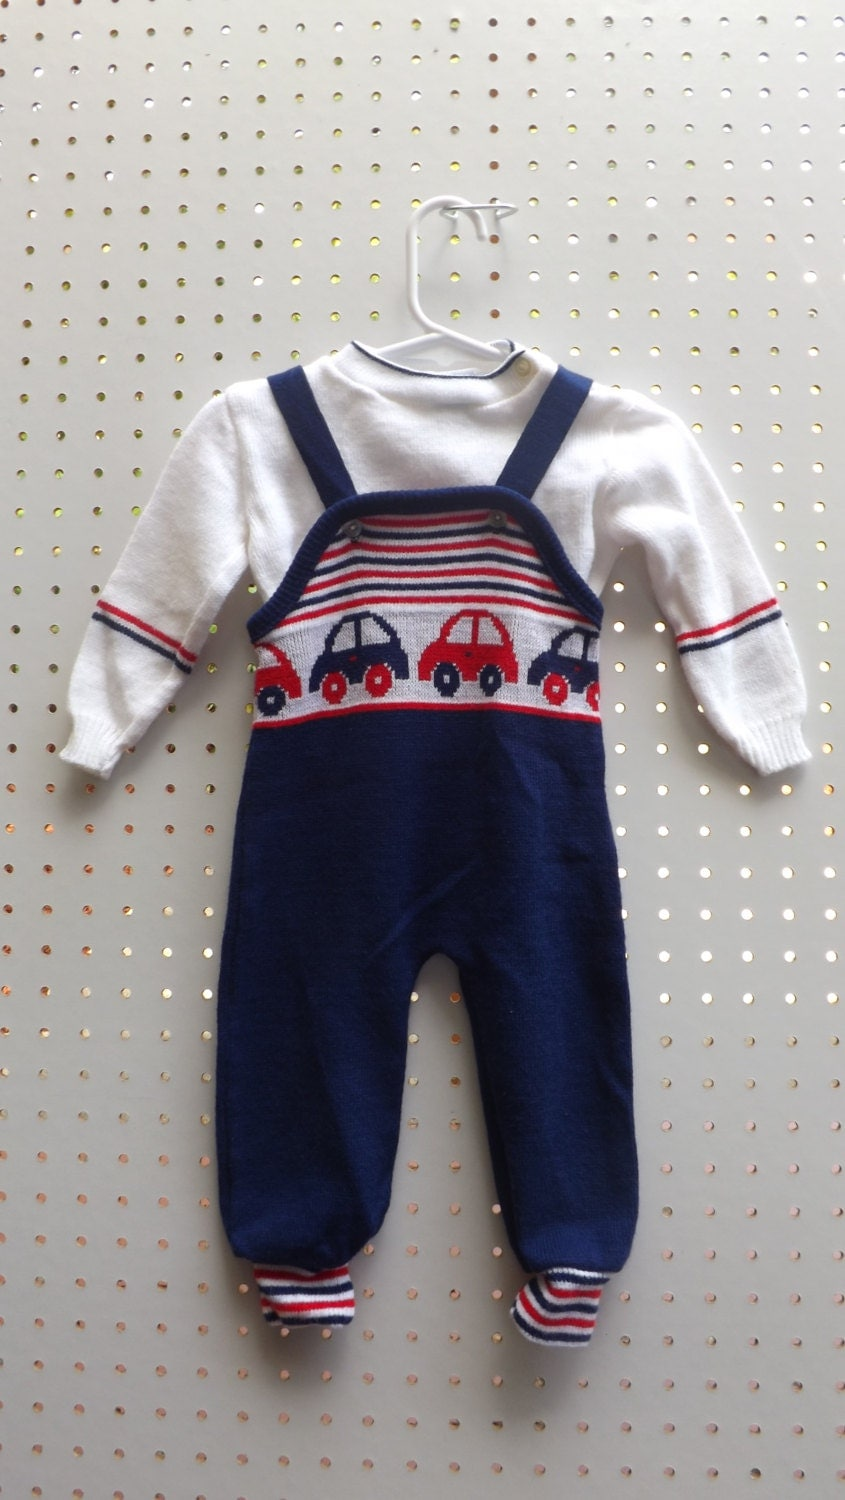 Sears Vintage Baby Boy Romper Set 1960s by SeptemberButterfly